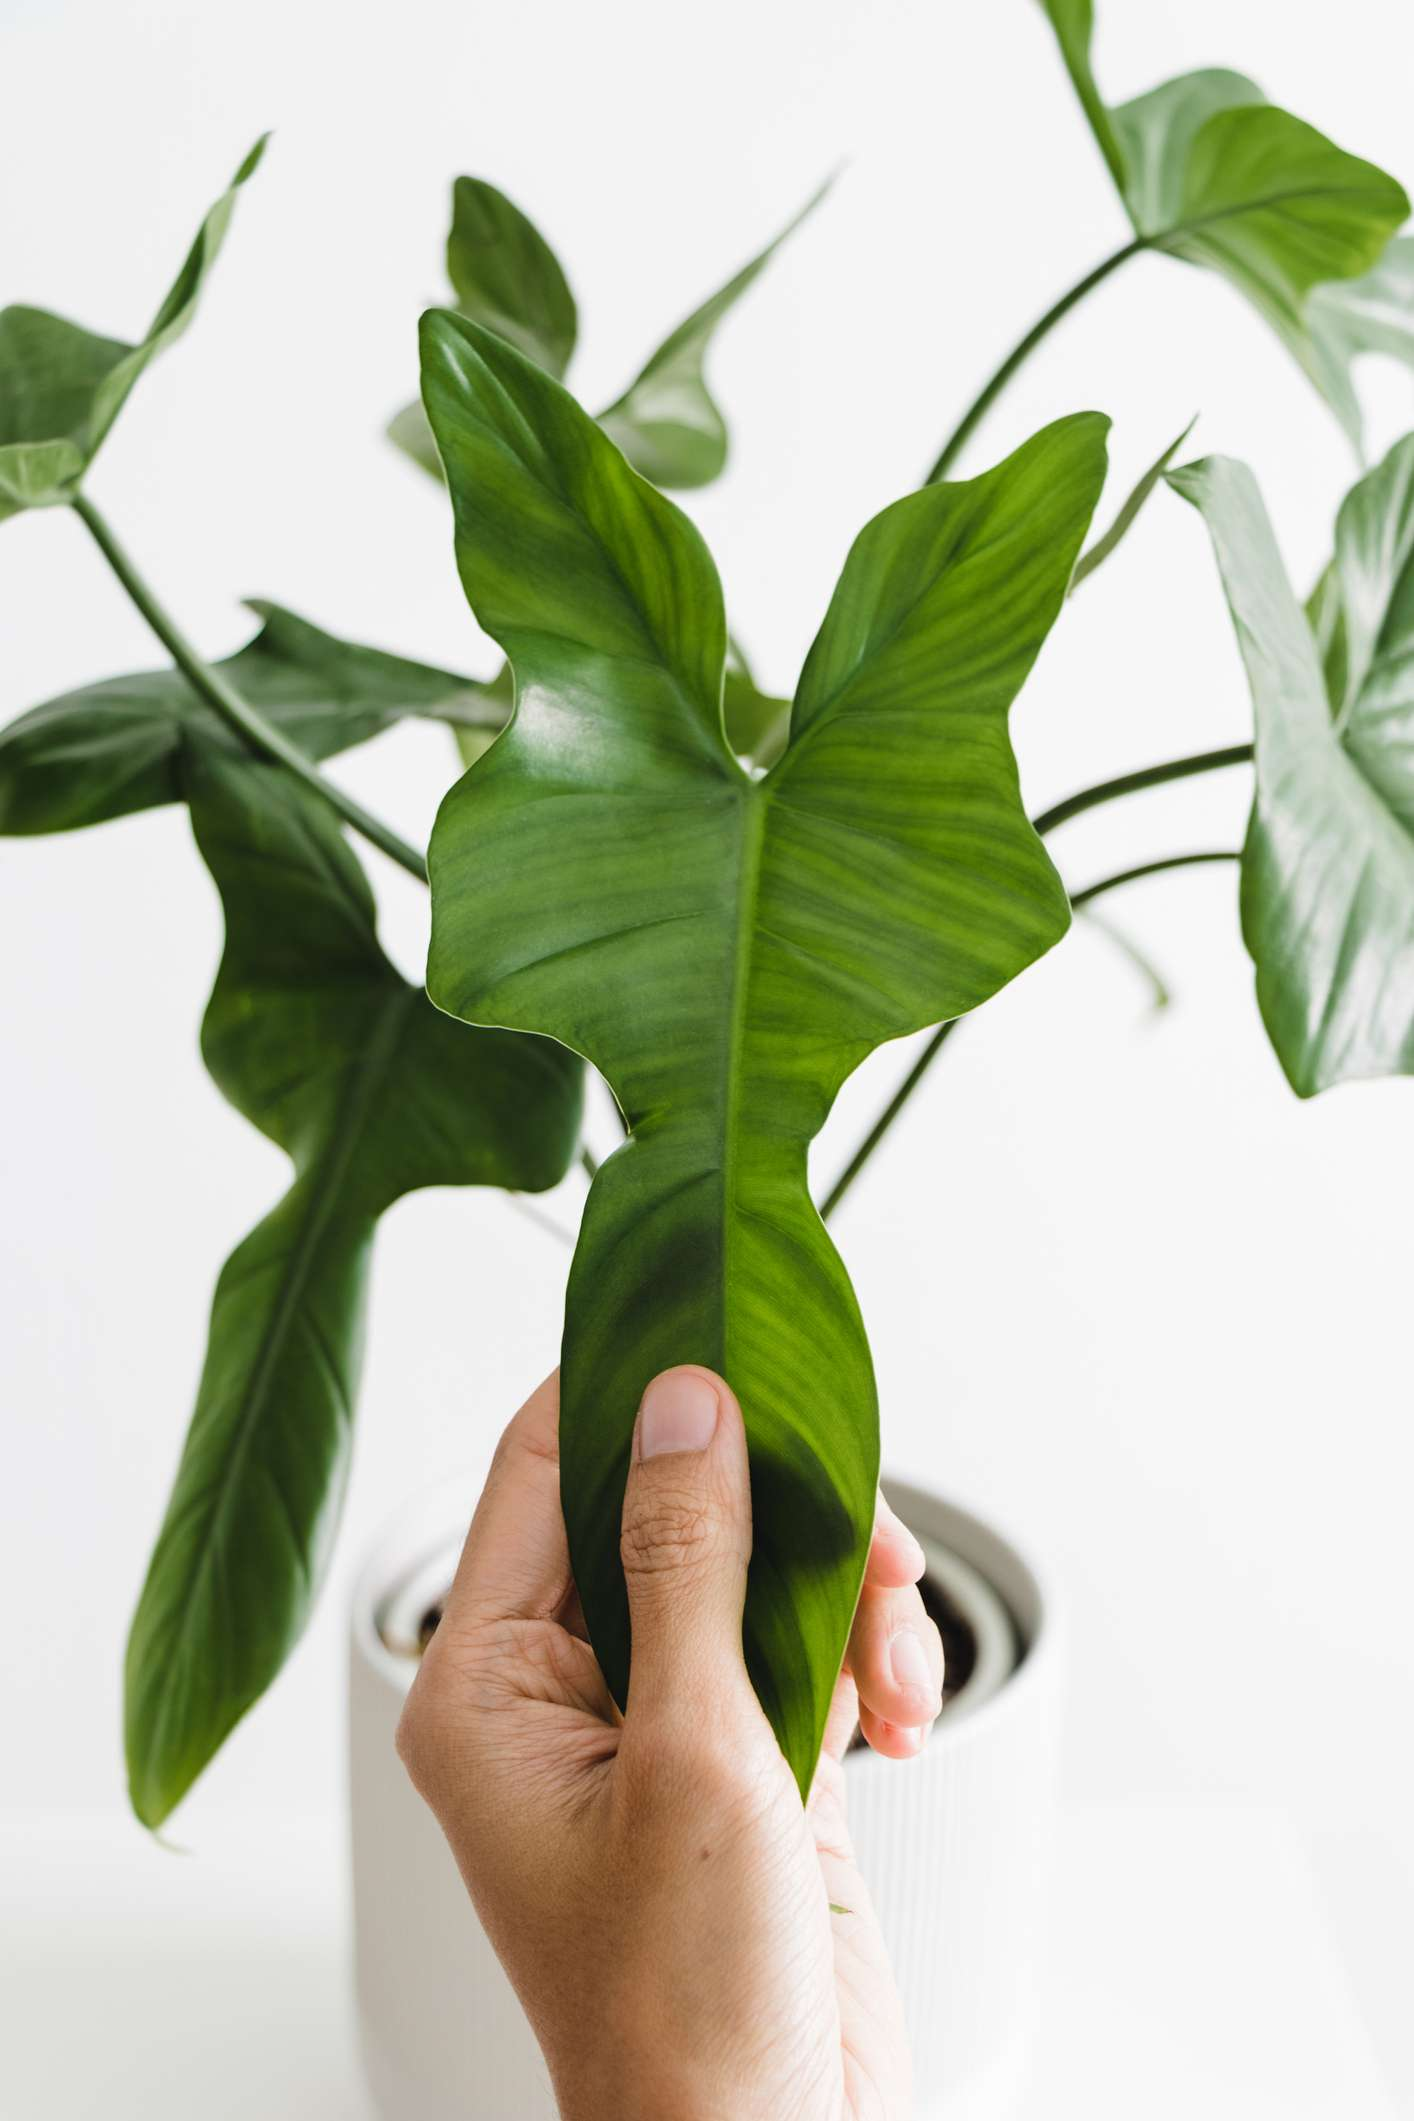 white person's hand holding leaf of philodendron bipennifolium schott plant in white pot against white background